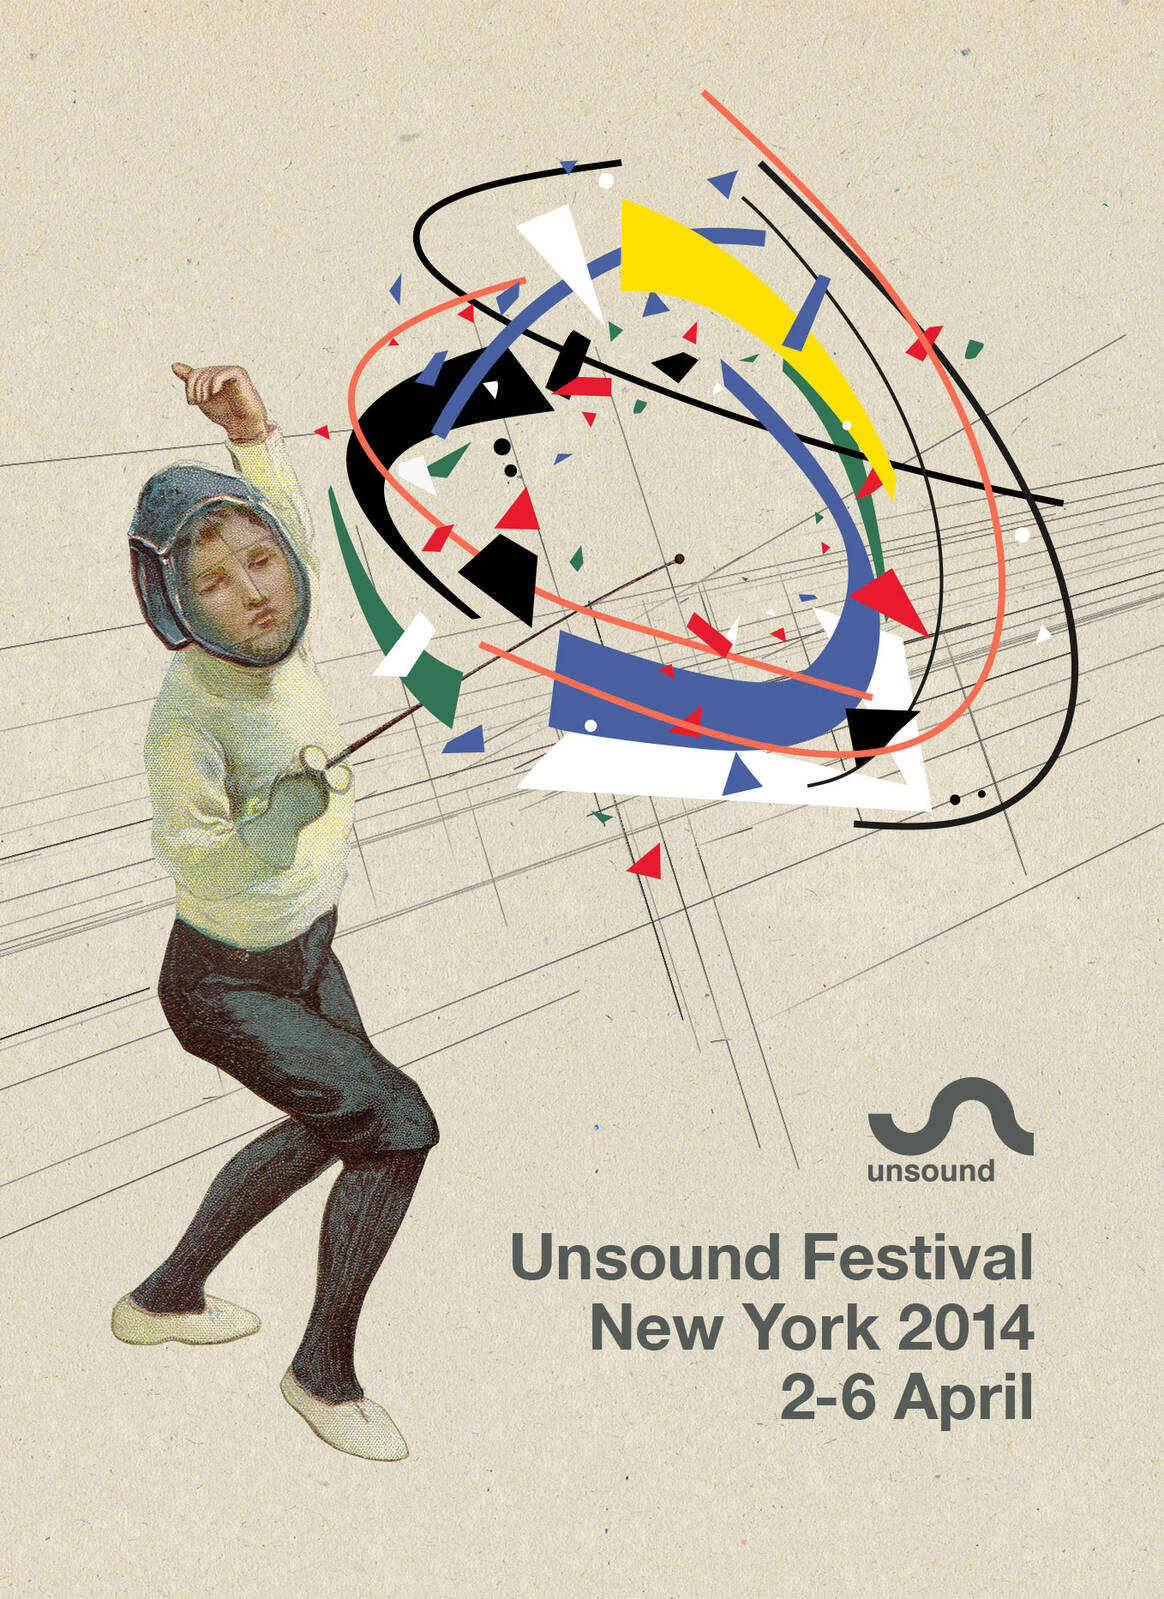 Unsound New York 2014 poster